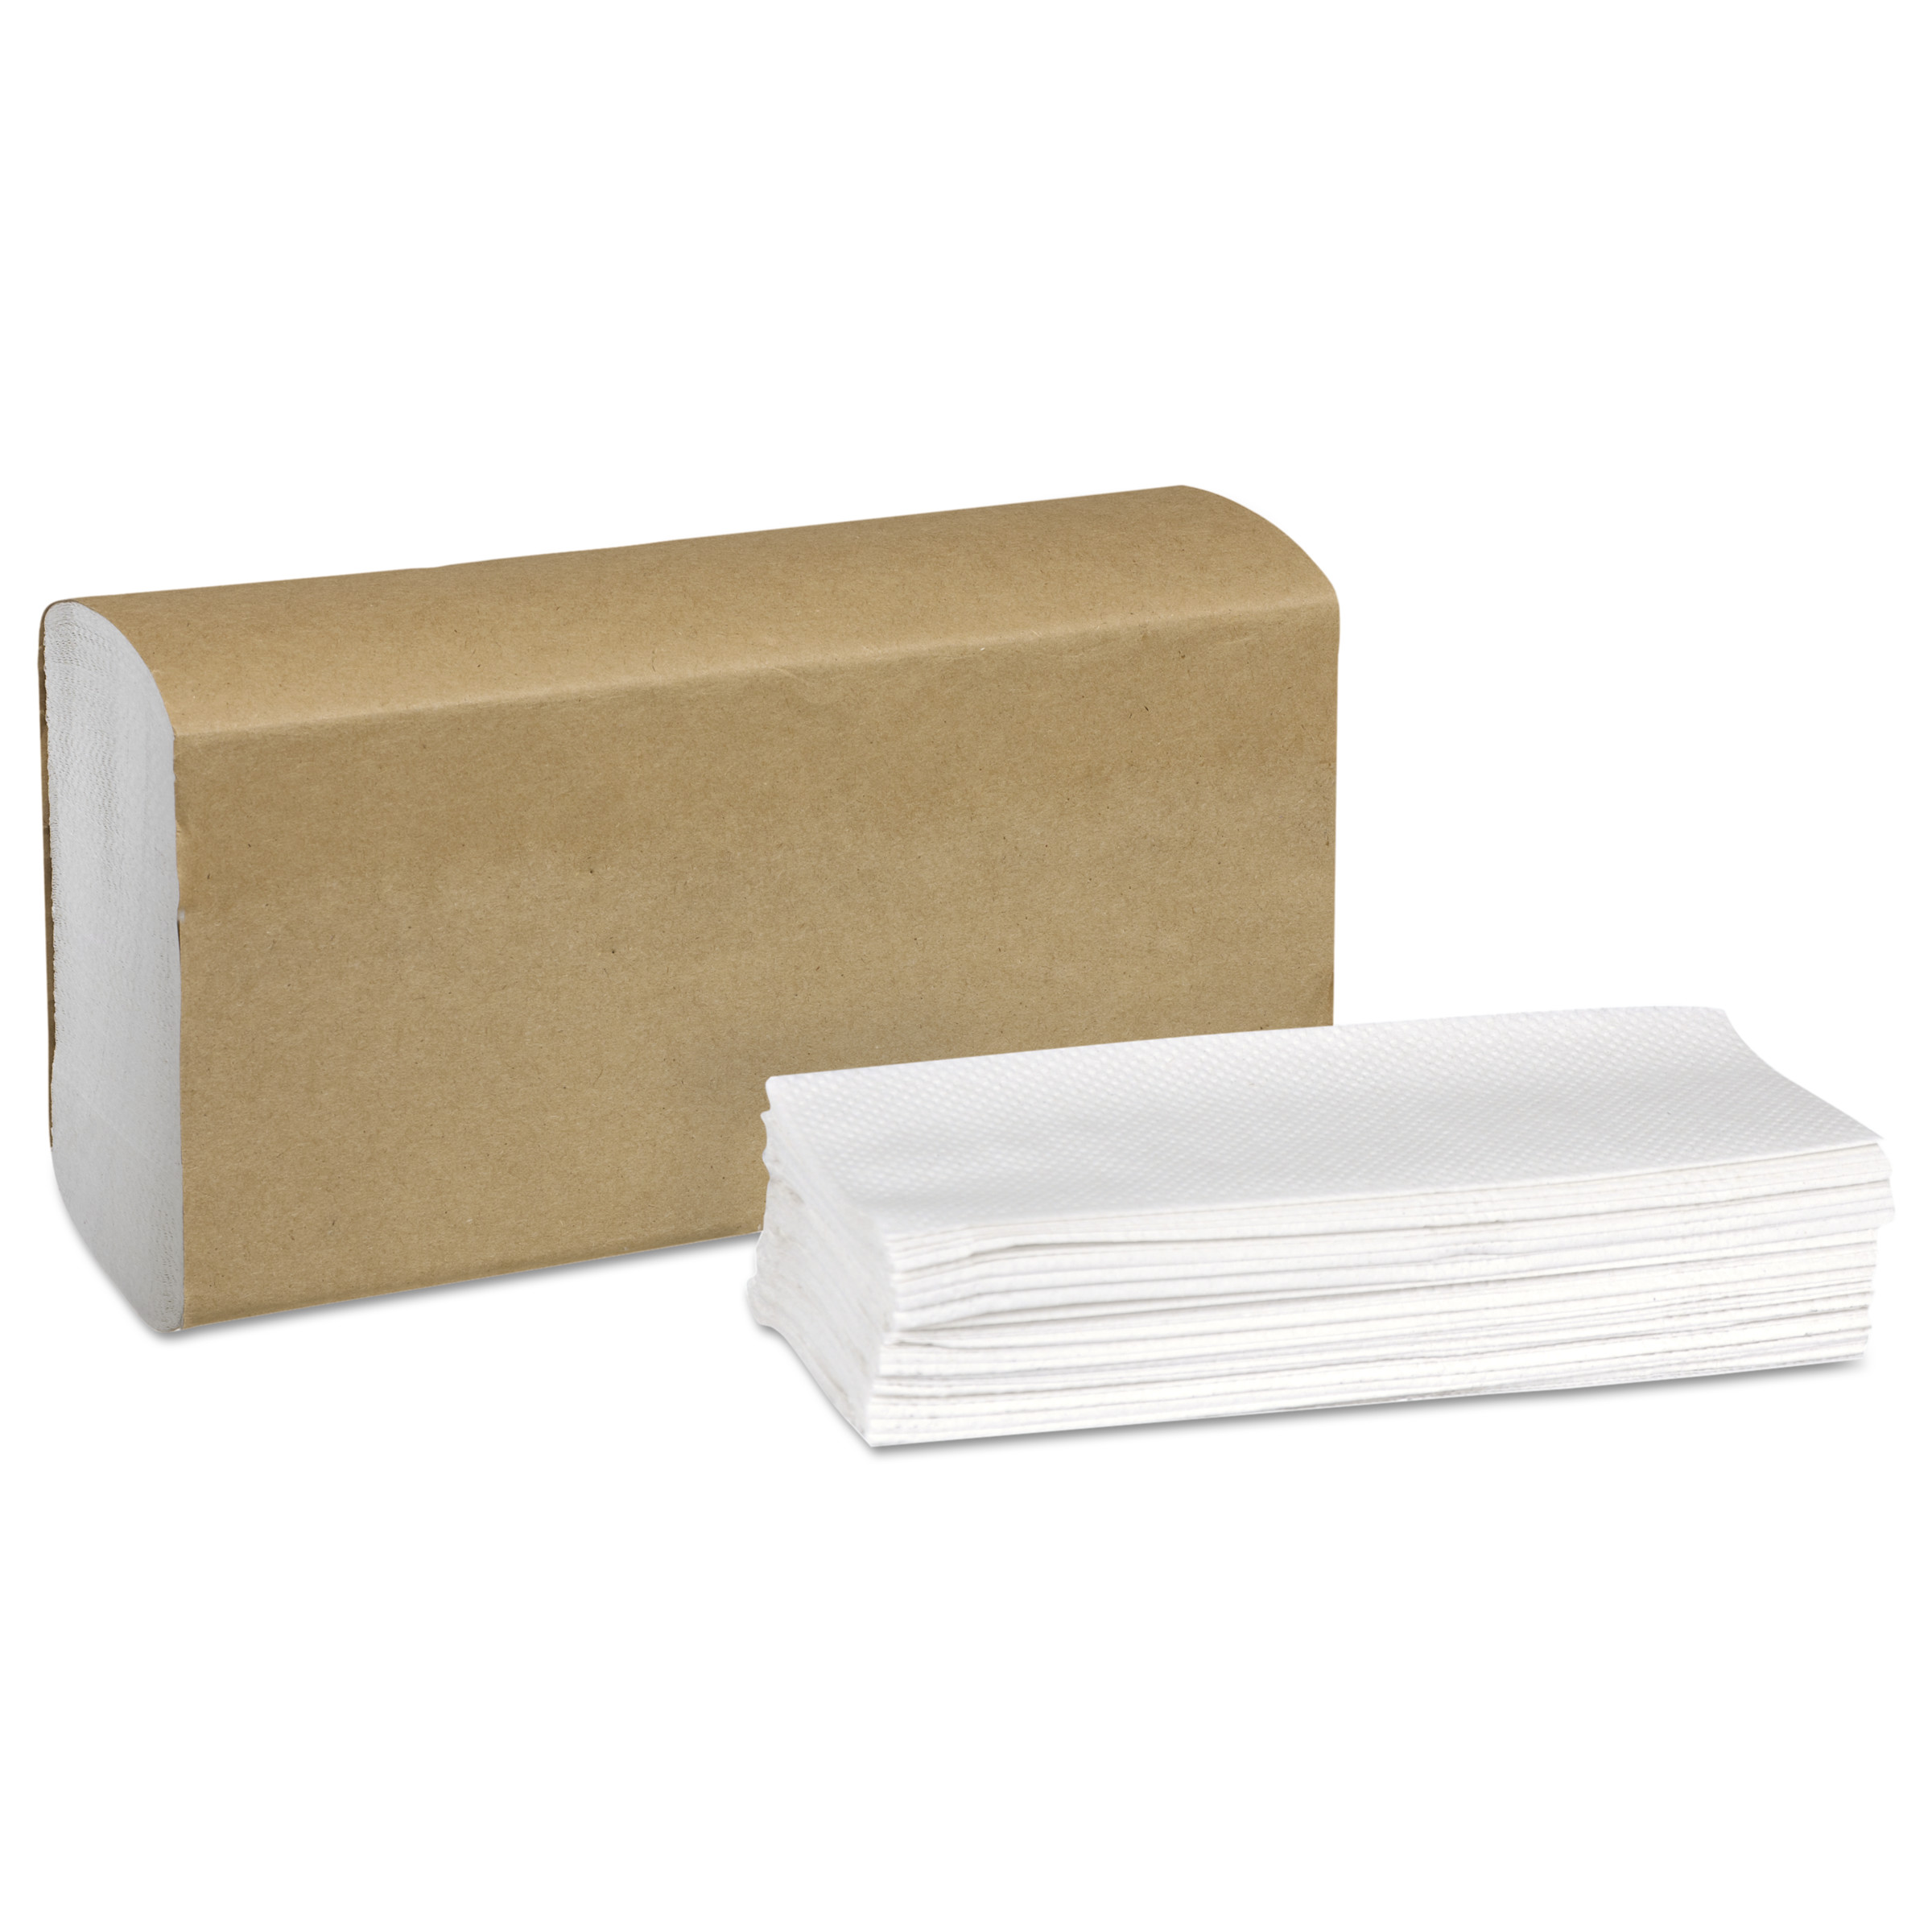 Universal Multifold Hand Towel, 9.13 x 9.5, White, 250/Pack,16 Packs/Carton